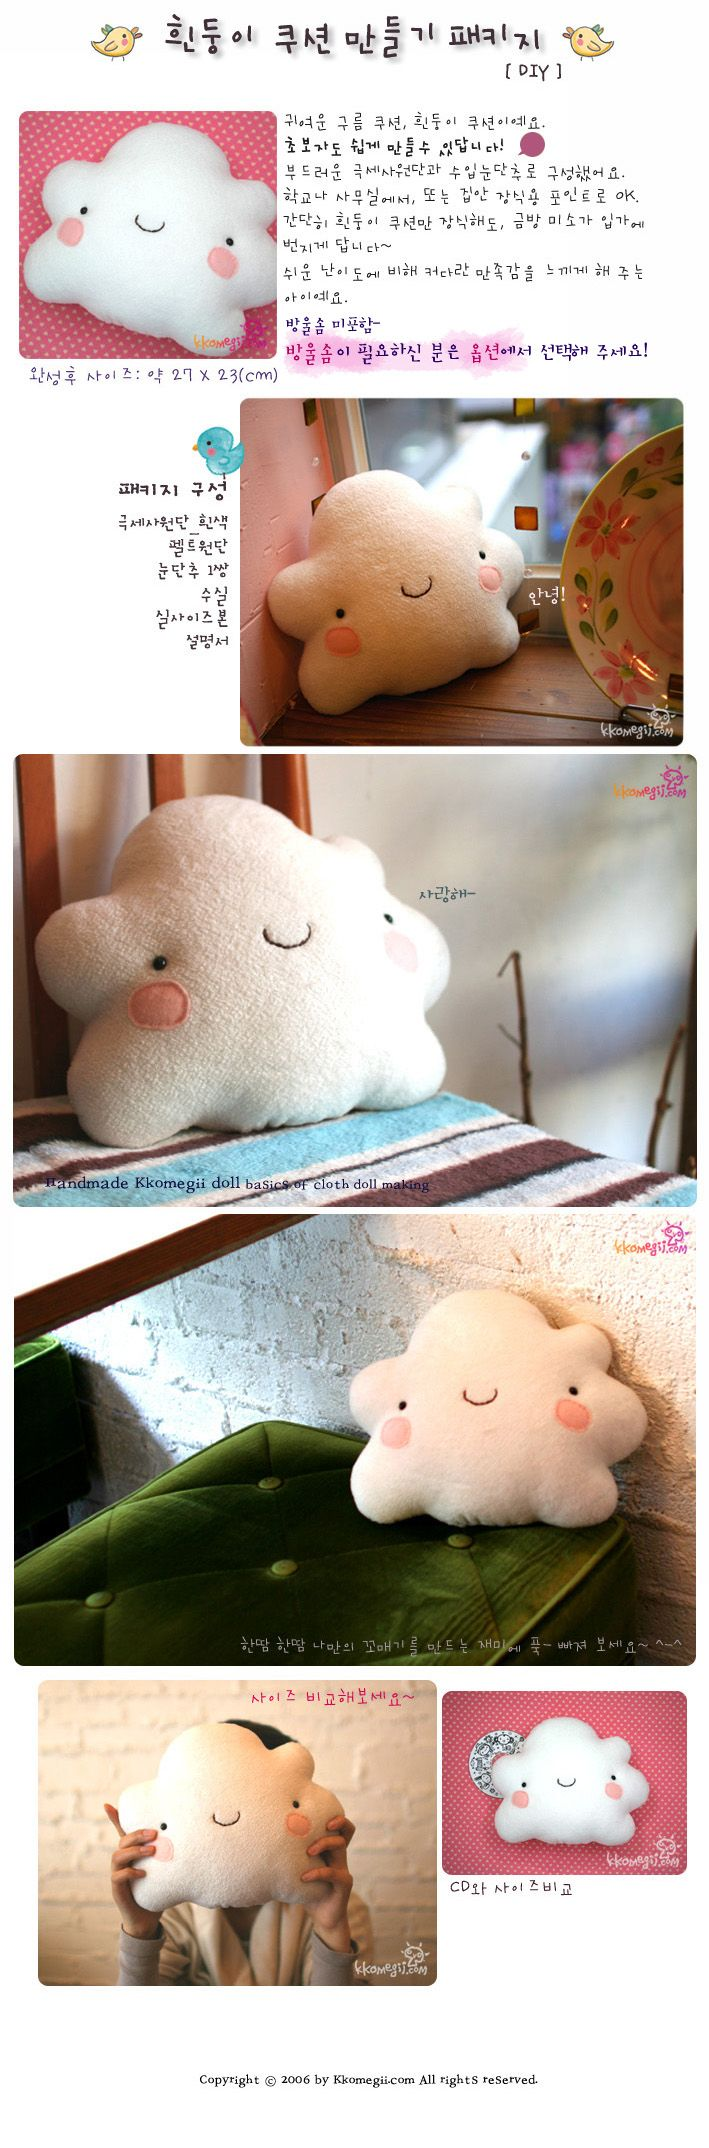 Cloud-Lumpy Space Princess anybody?? cute kawaii kids room cushion plushie toy smiley clouds